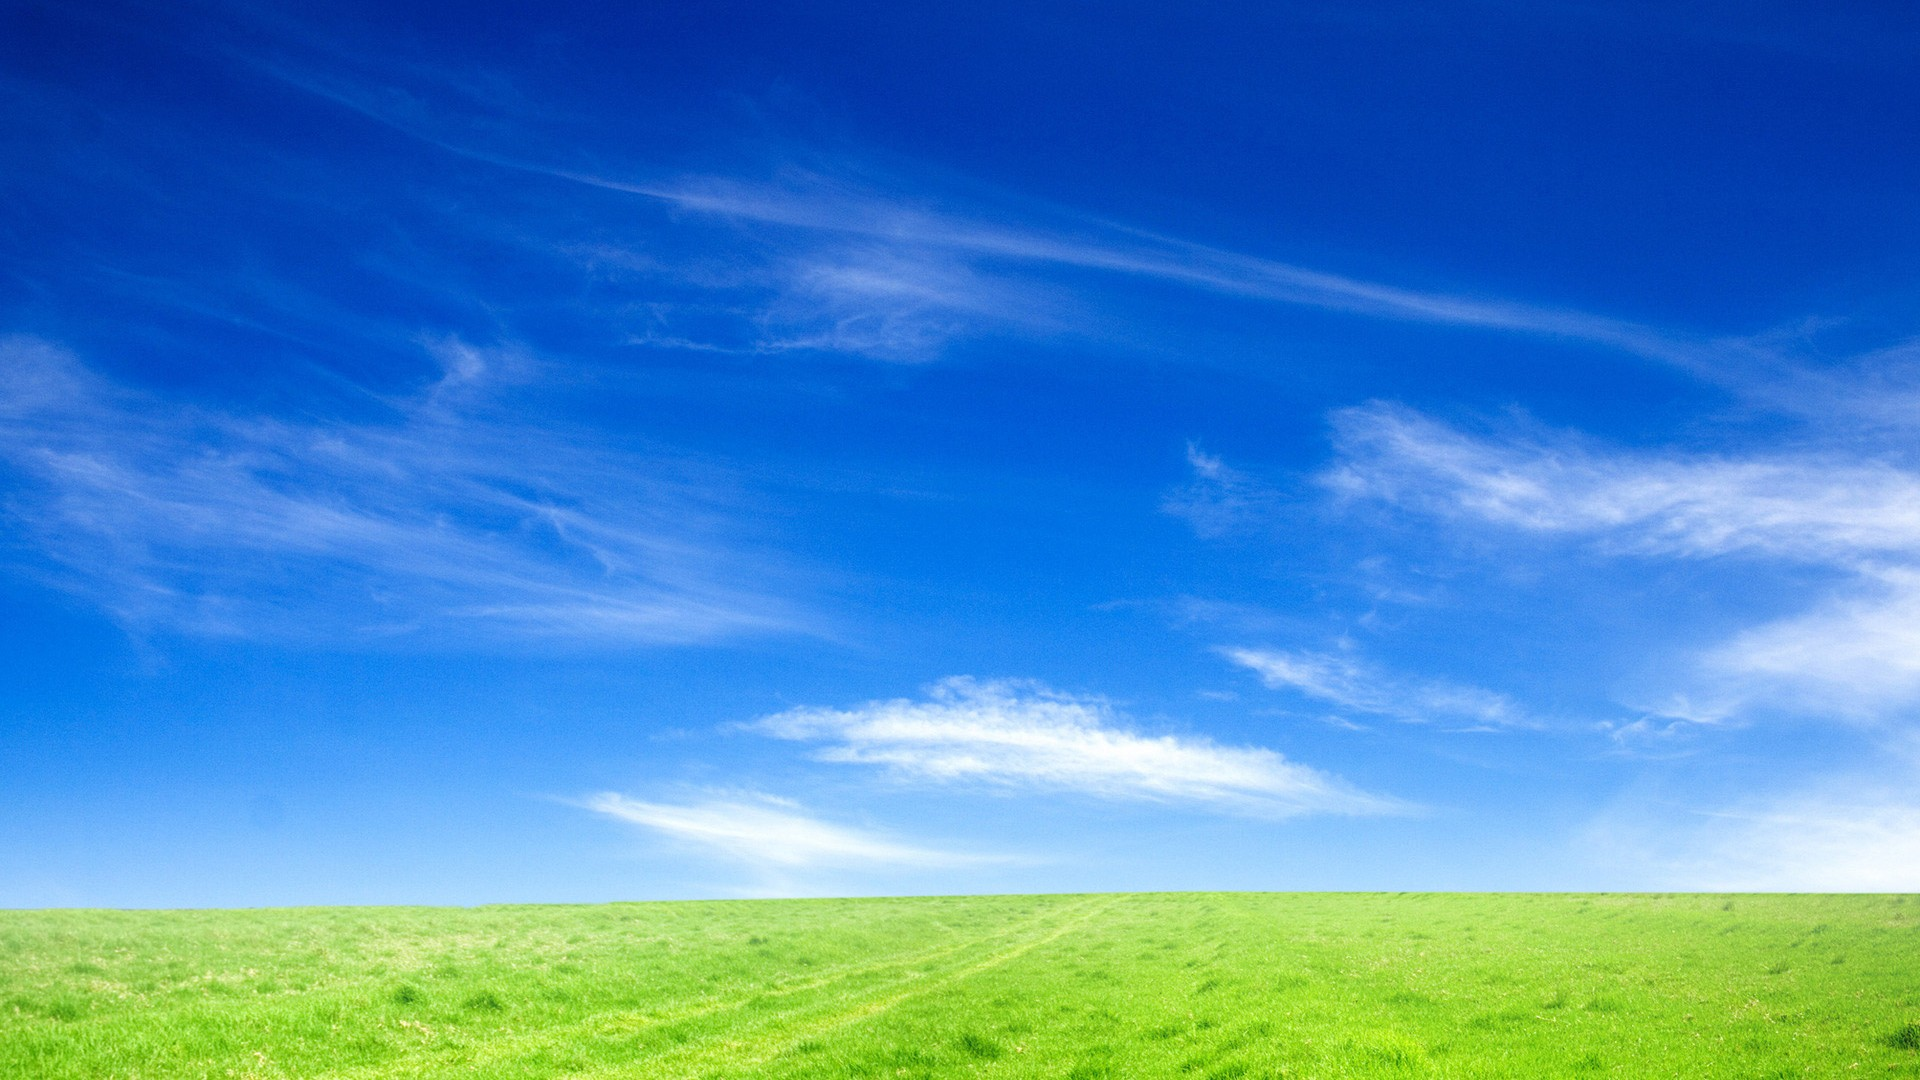 3d Wallpaper For Ipad Blue Sky And Green Grass Wallpapers Hd Wallpapers Id